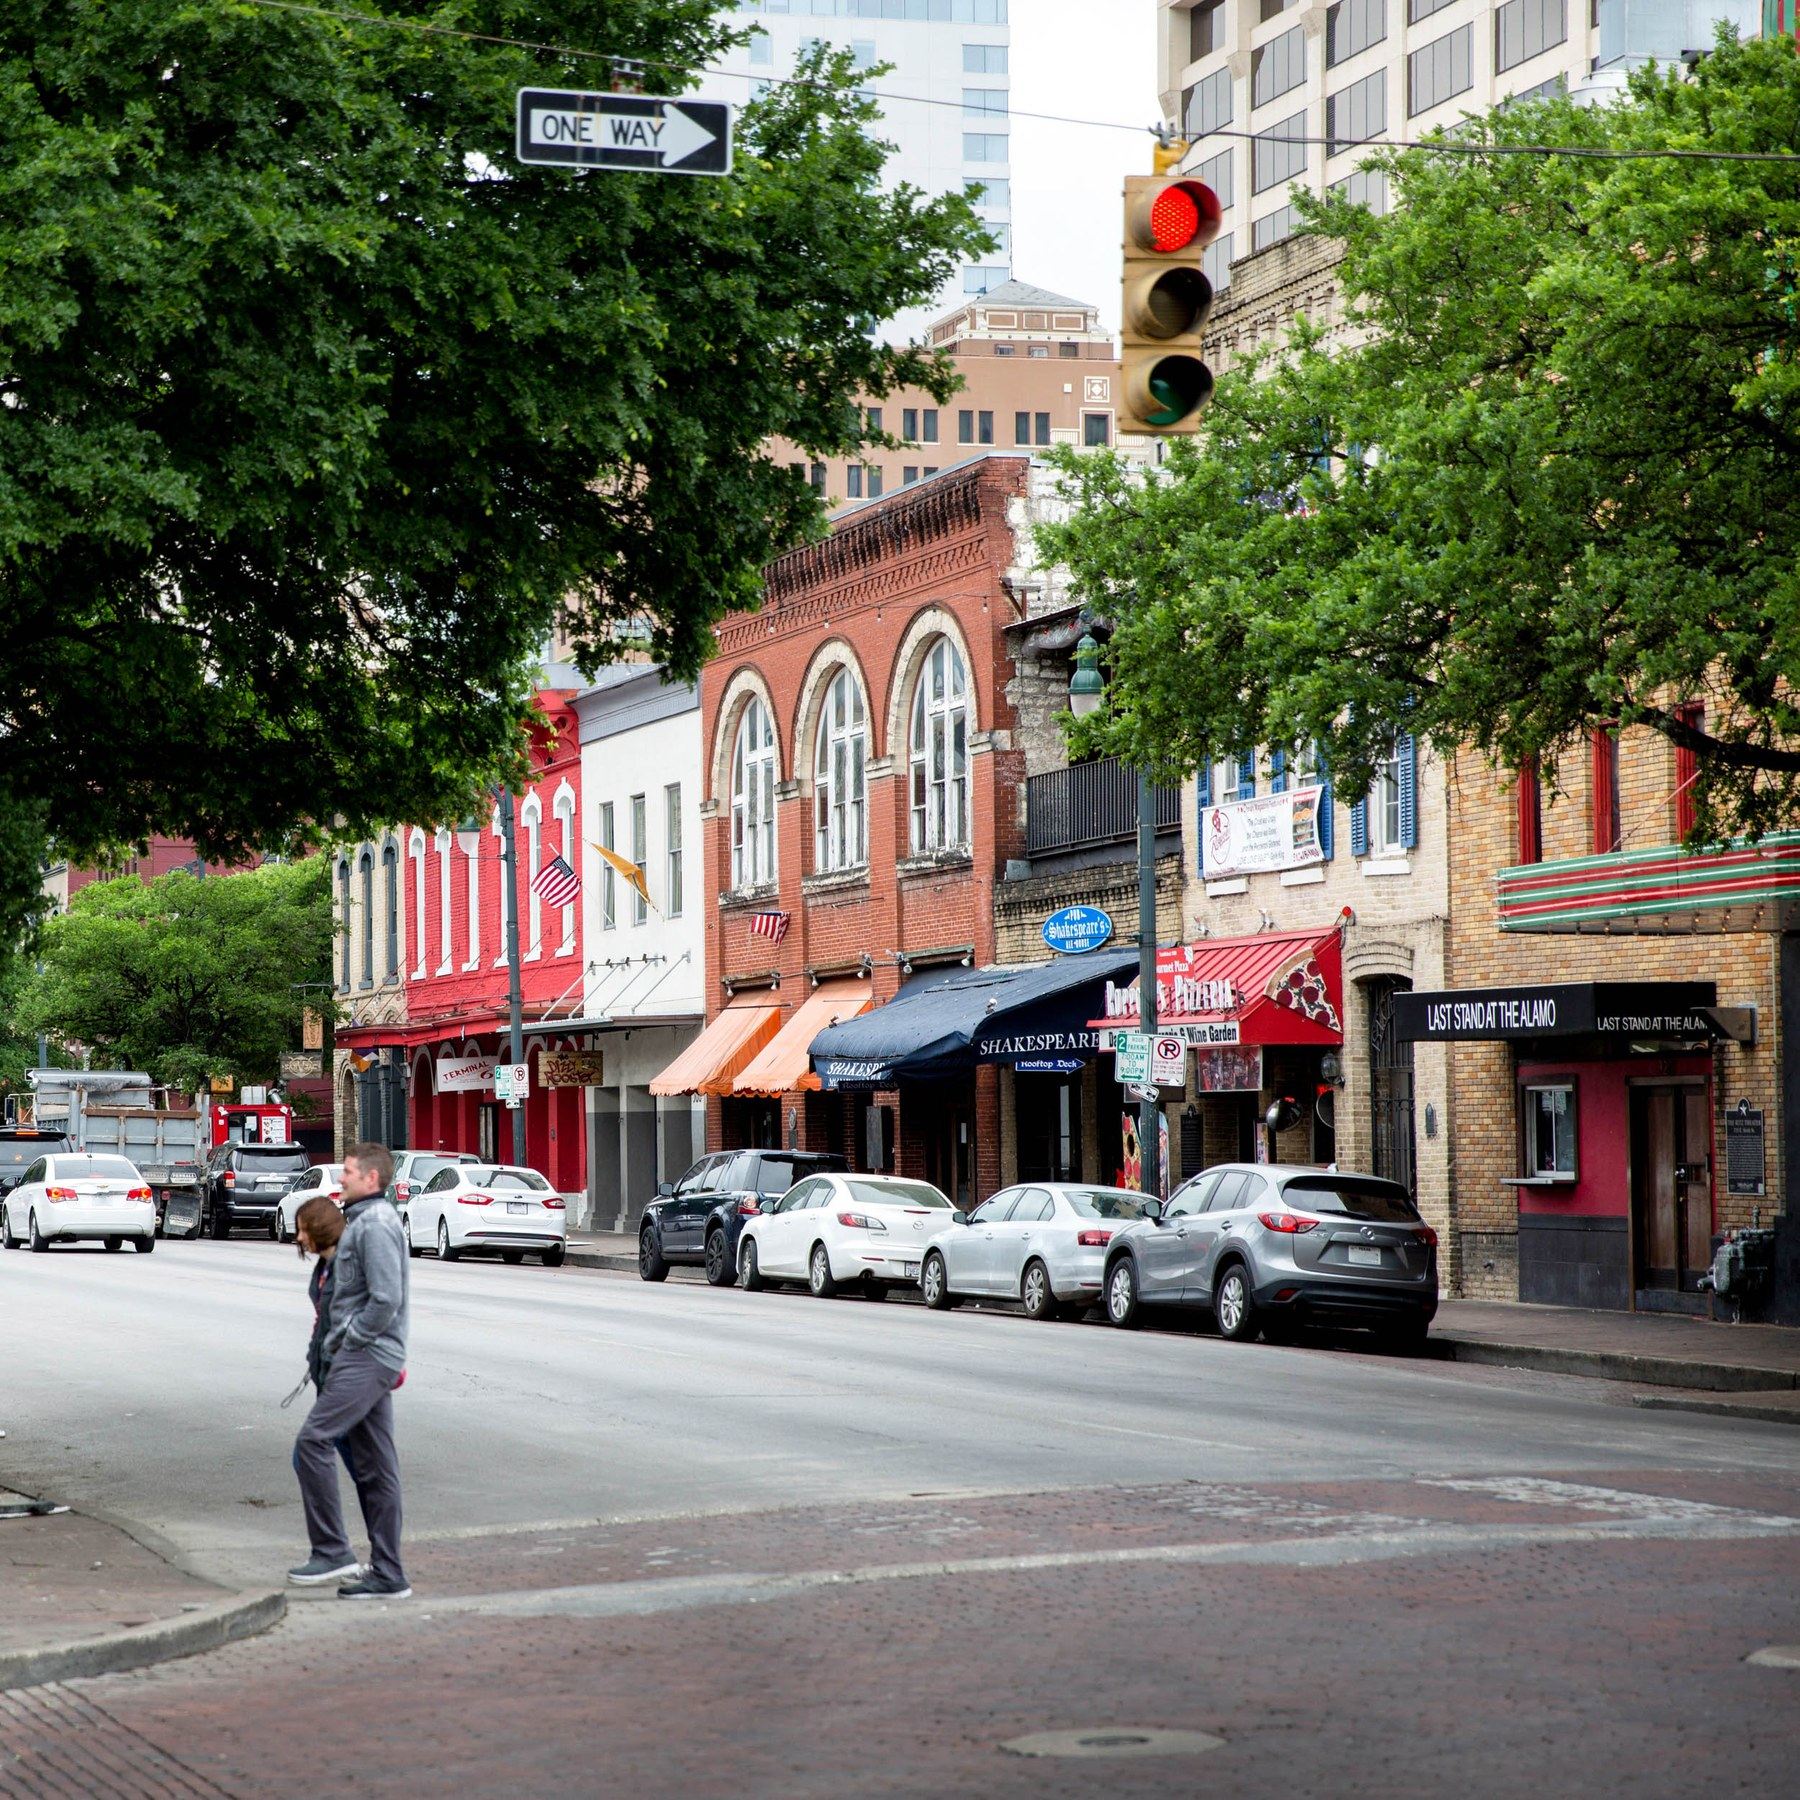 Apartments For Sale Texas: Downtown, Austin TX - Neighborhood Guide